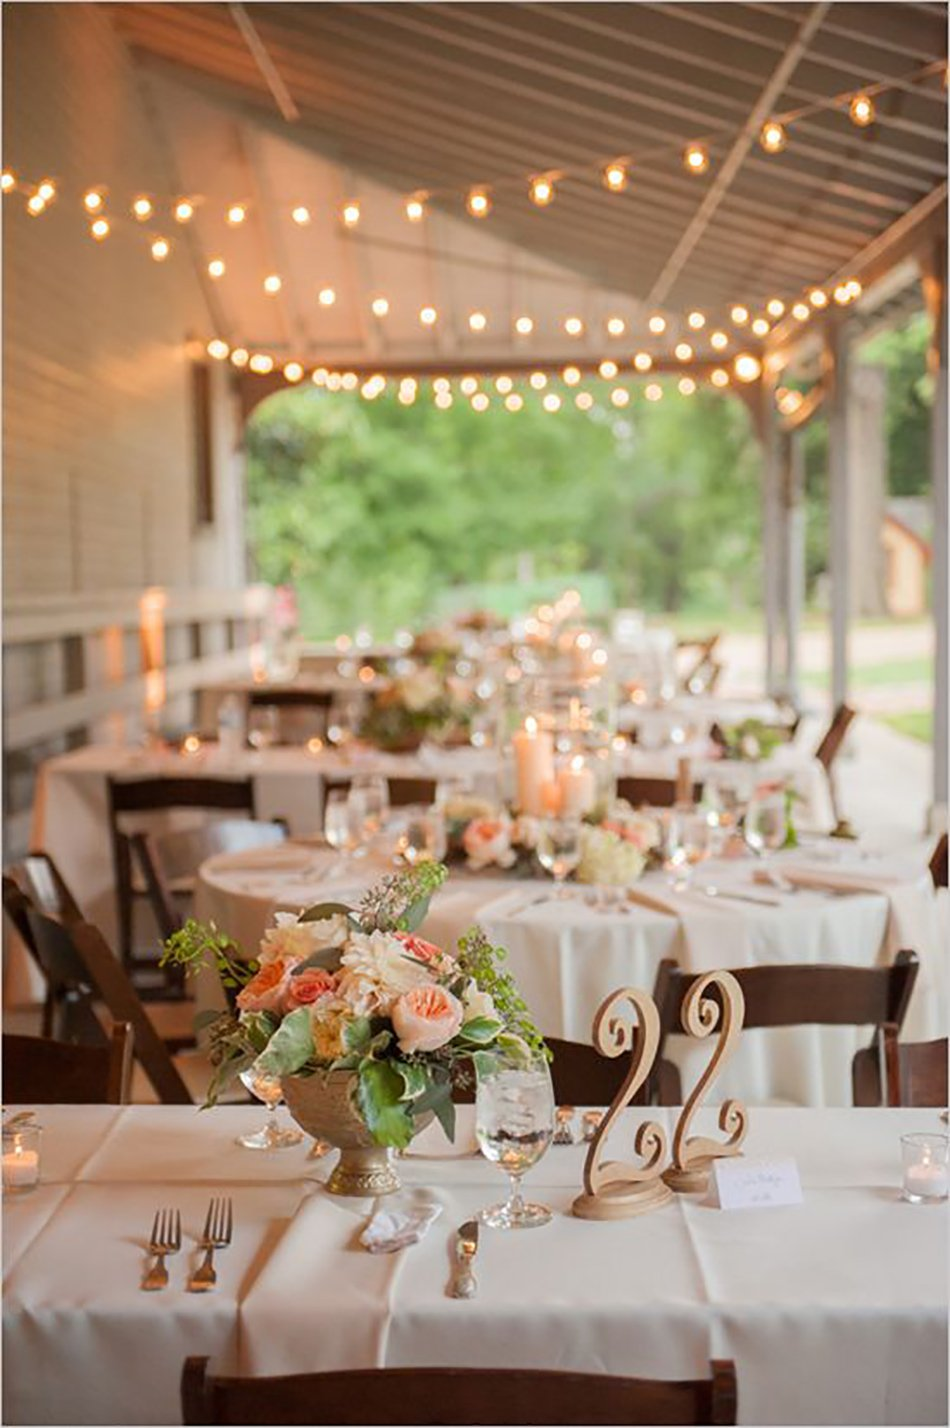 Wedding ideas by colour: pastel peach table décor